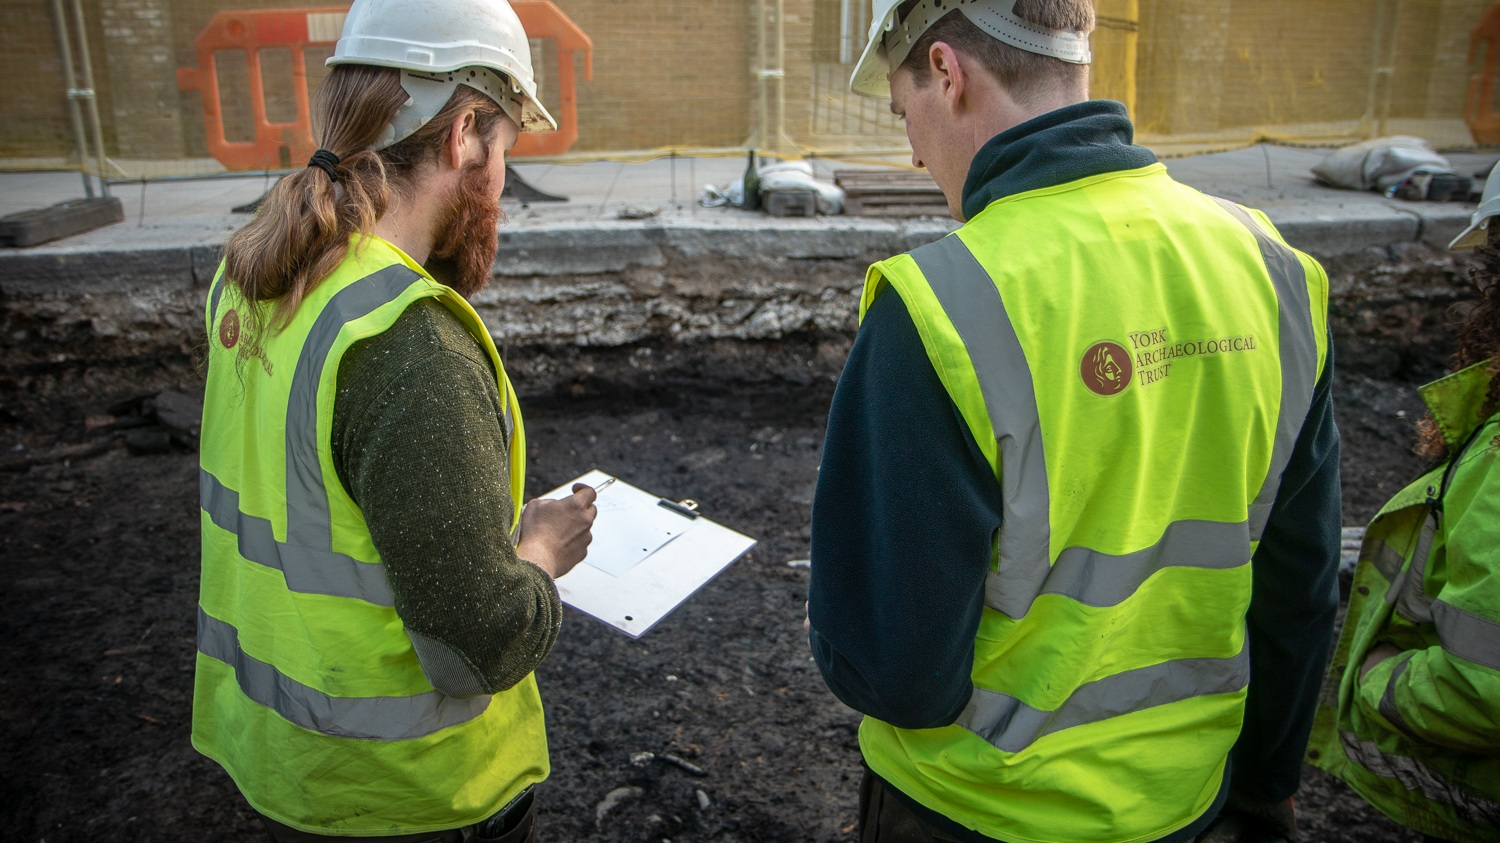 Heritage Plans - Our Conservation Heritage Plans establish the heritage interest of a site or property and its most significant aspects. Heritage plans provide strategies for change and enhancement, and are often required for a funding bid.